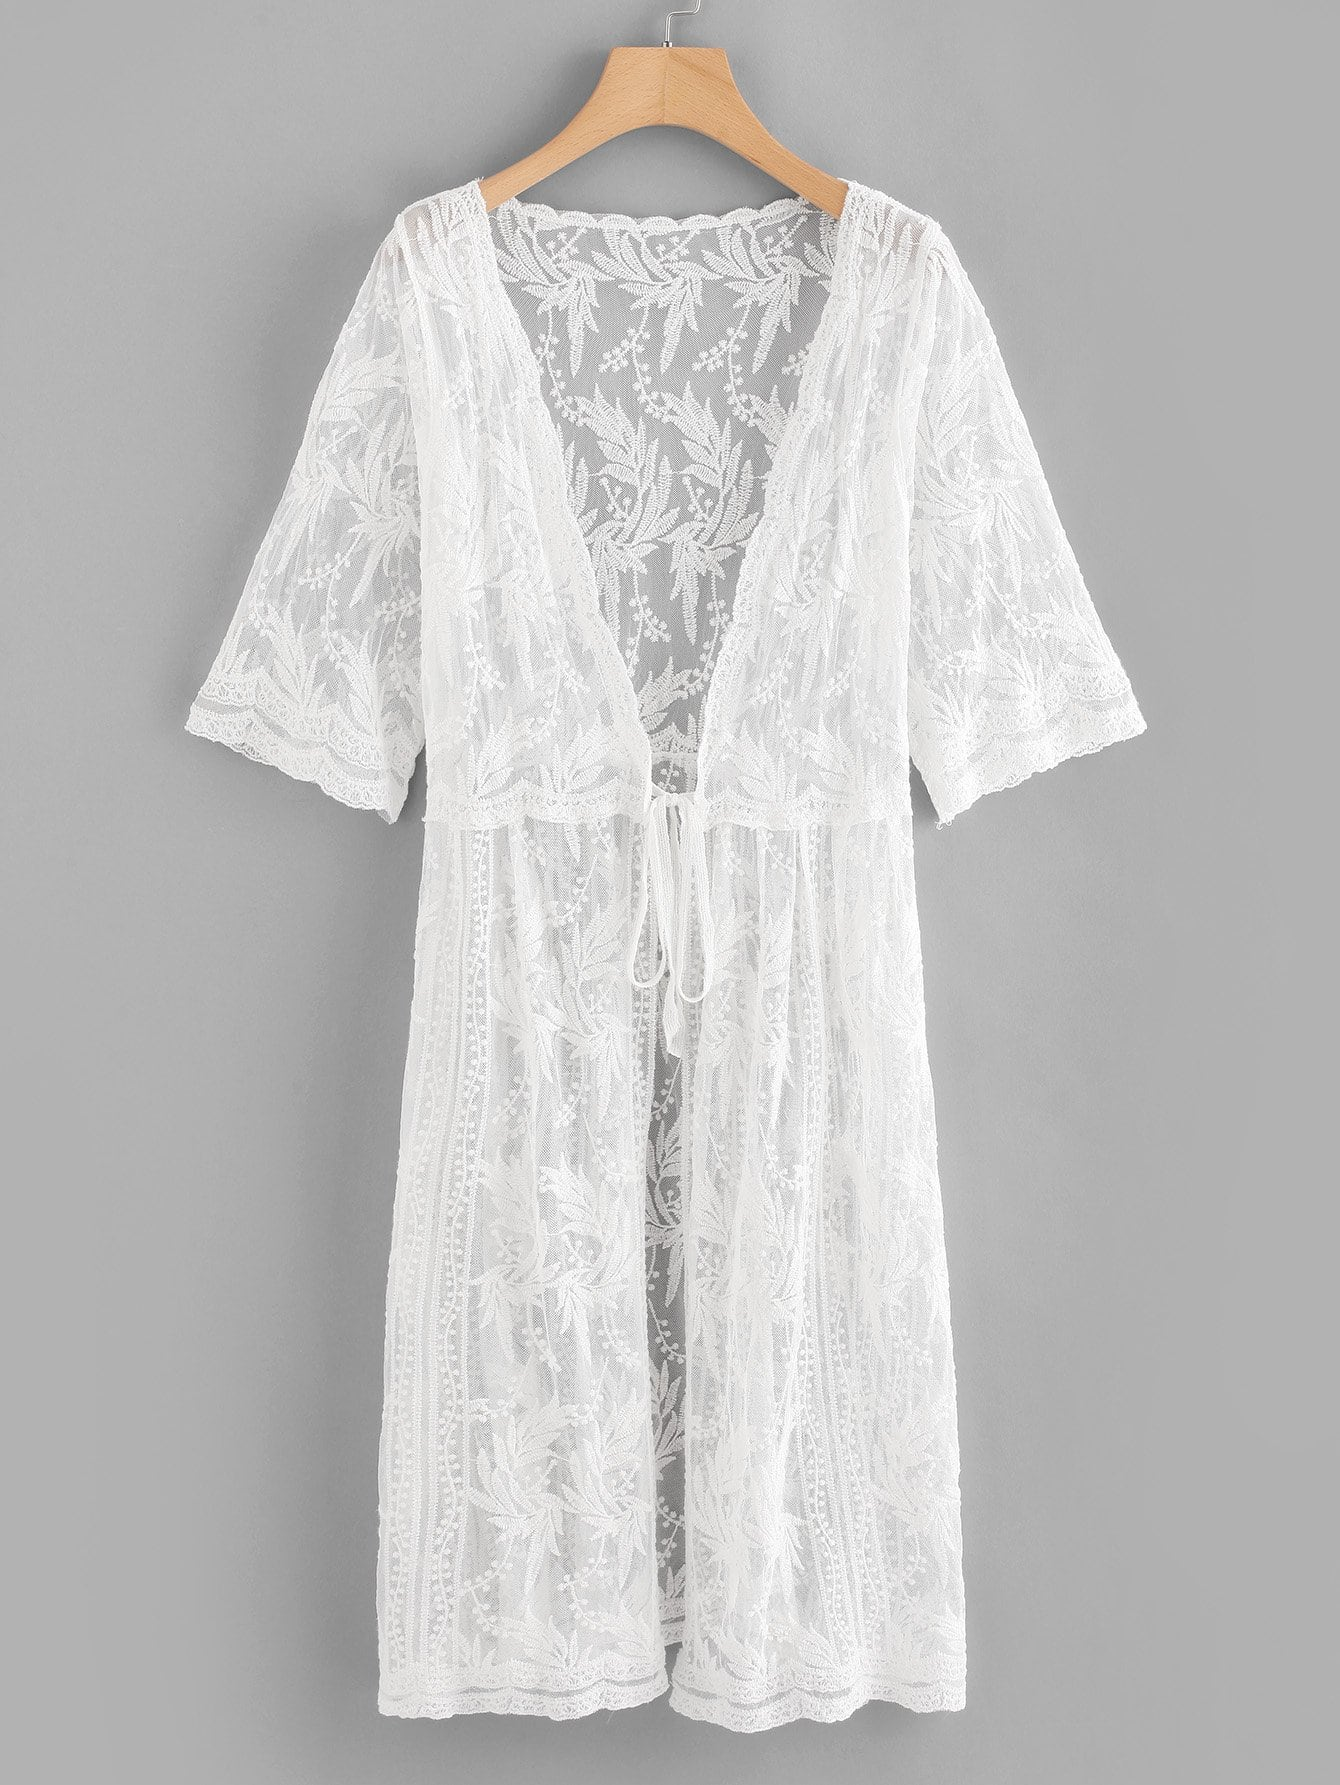 Lace Embroidery Knot Front Cover Up embroidery applique knot back fitted